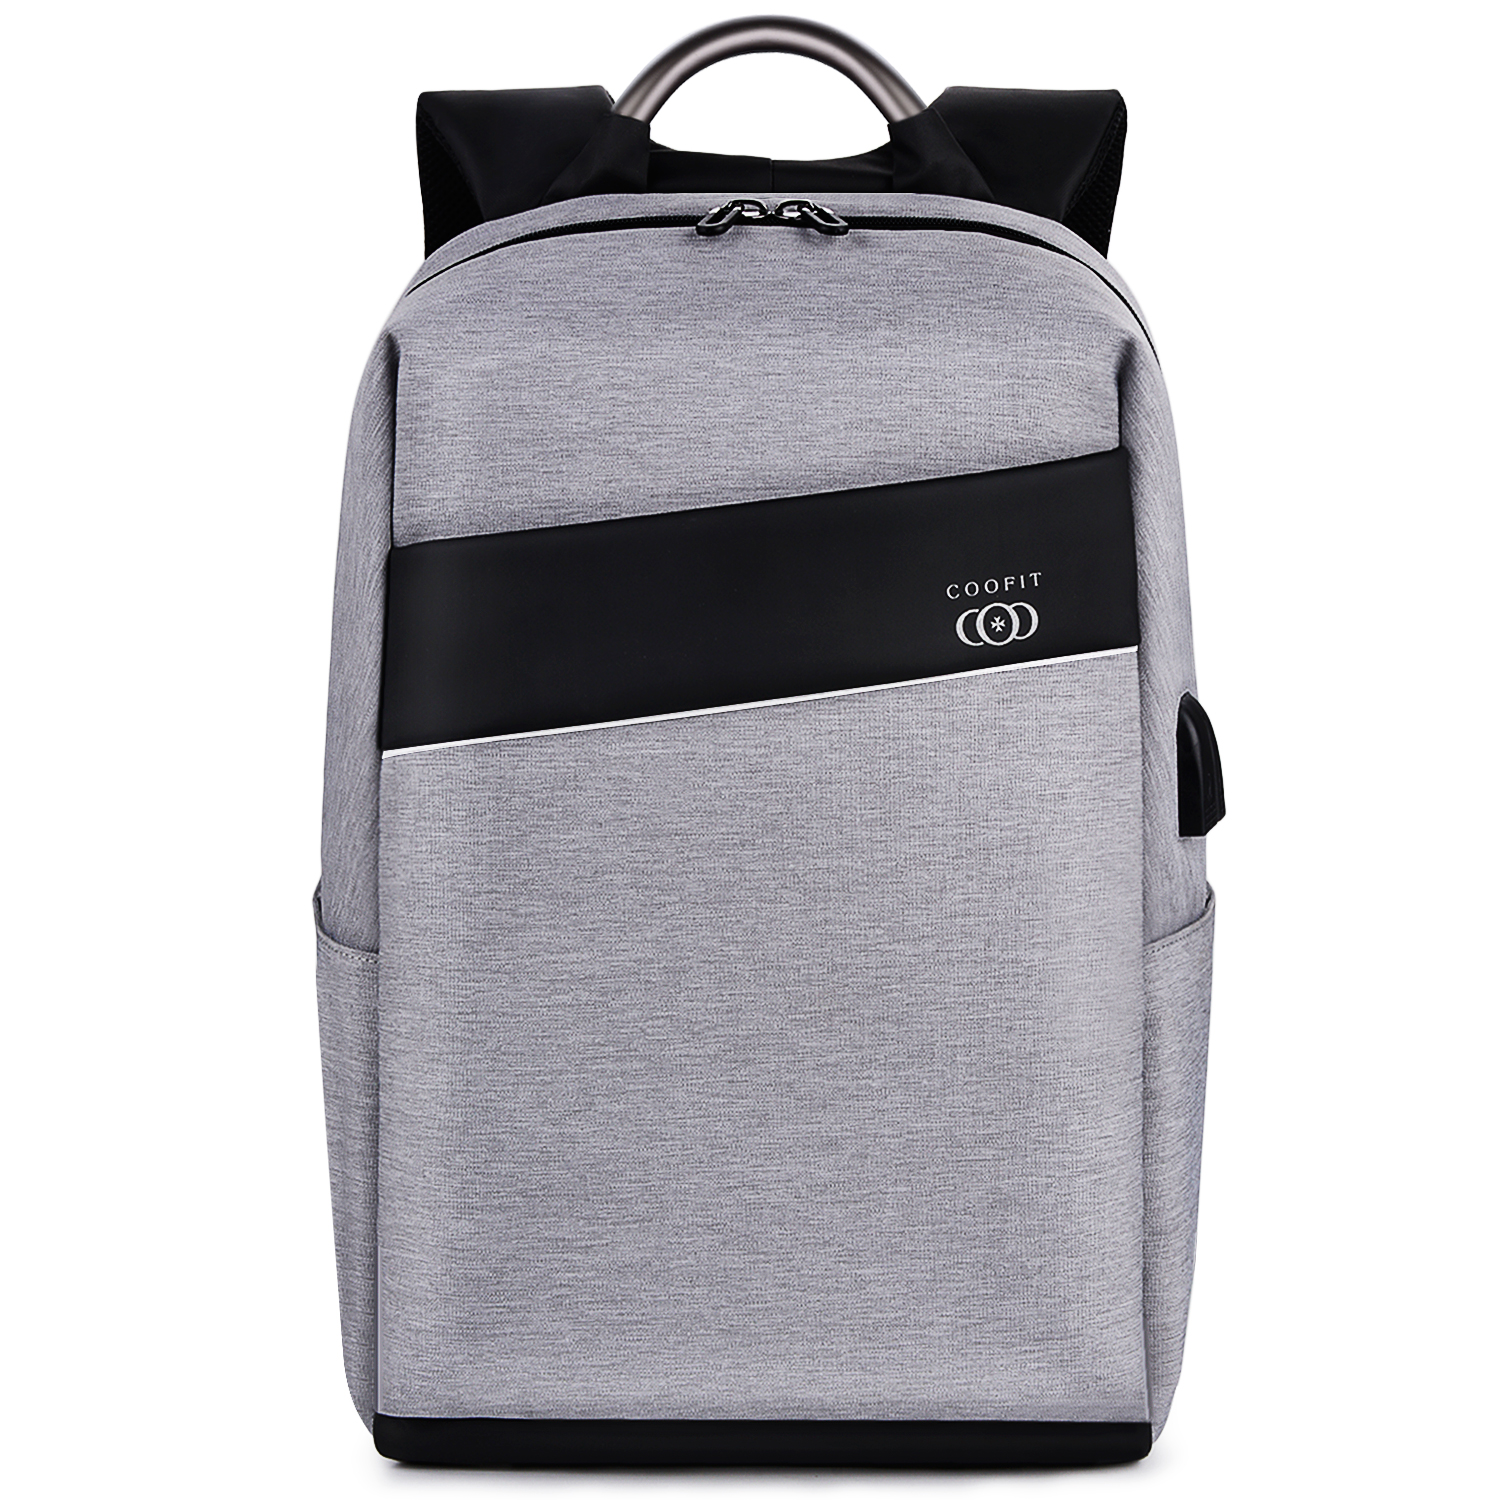 15.6'' Anti-theft Alarm Laptop Backpack or Business/Travel /Work